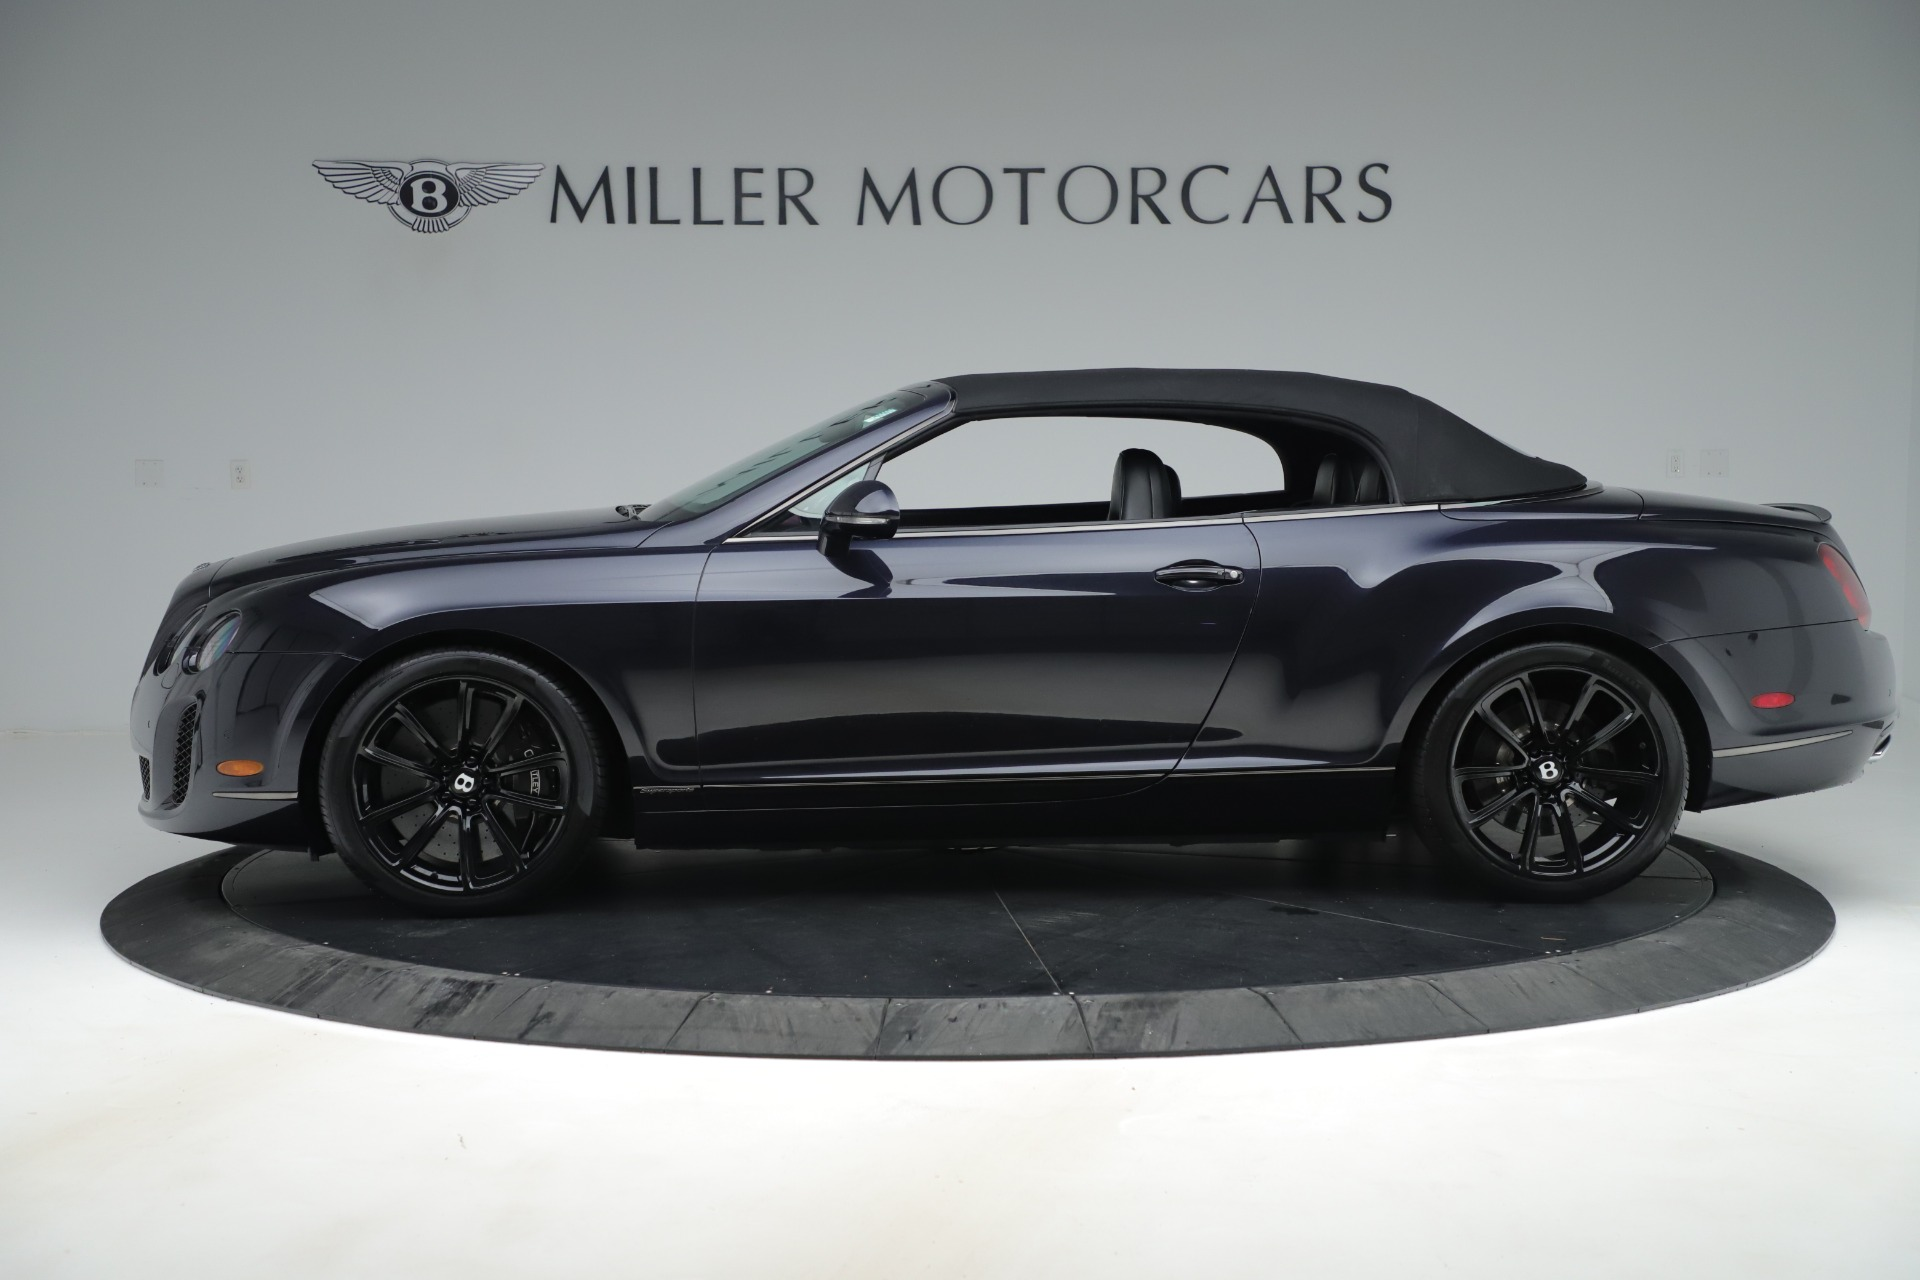 Used 2012 Bentley Continental Supersports Supersports For Sale In Westport, CT 3214_p14